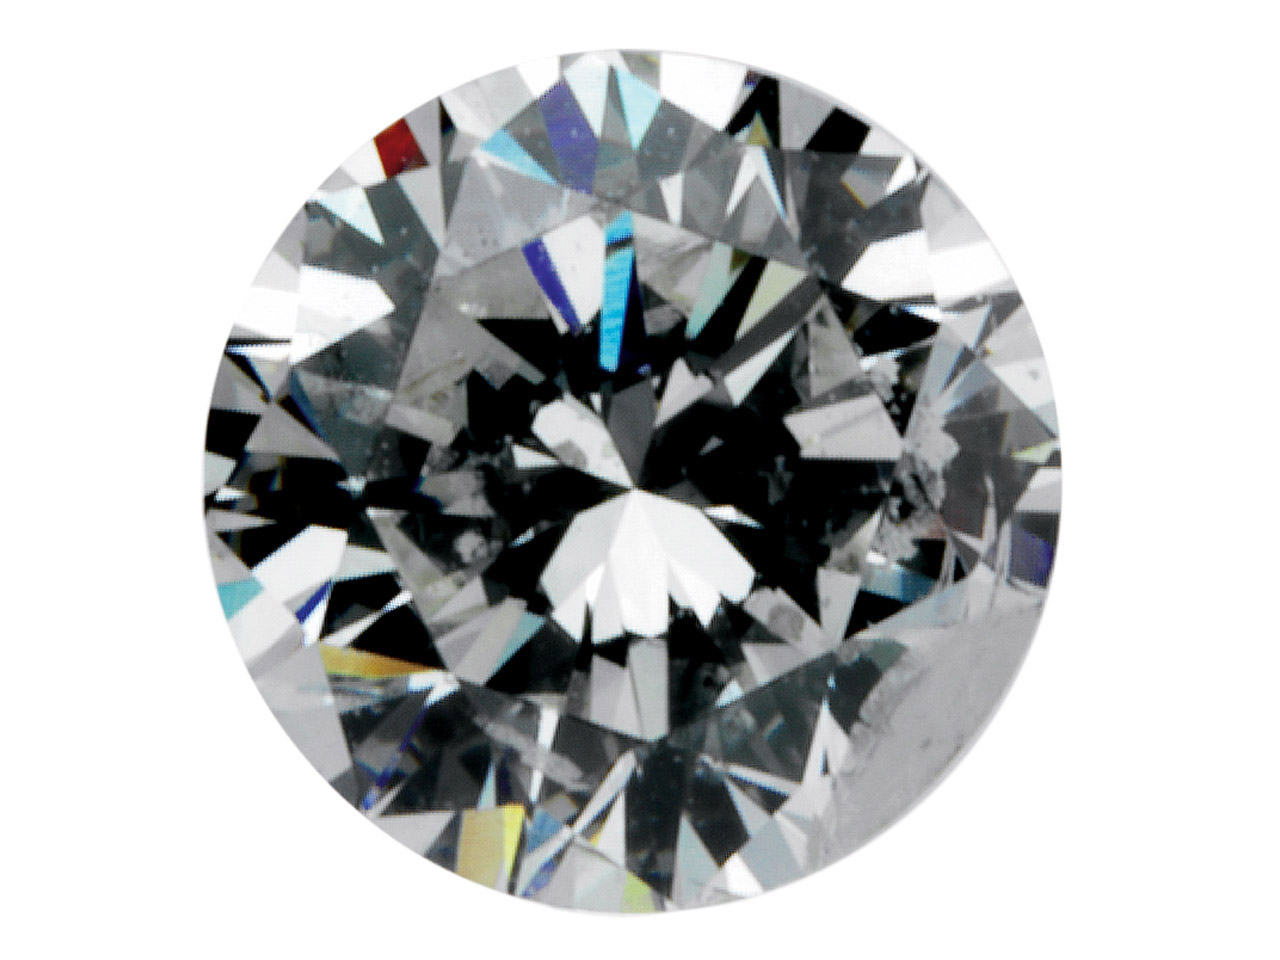 Diamond, Round, H-i/p2, 13pt/3.2mm